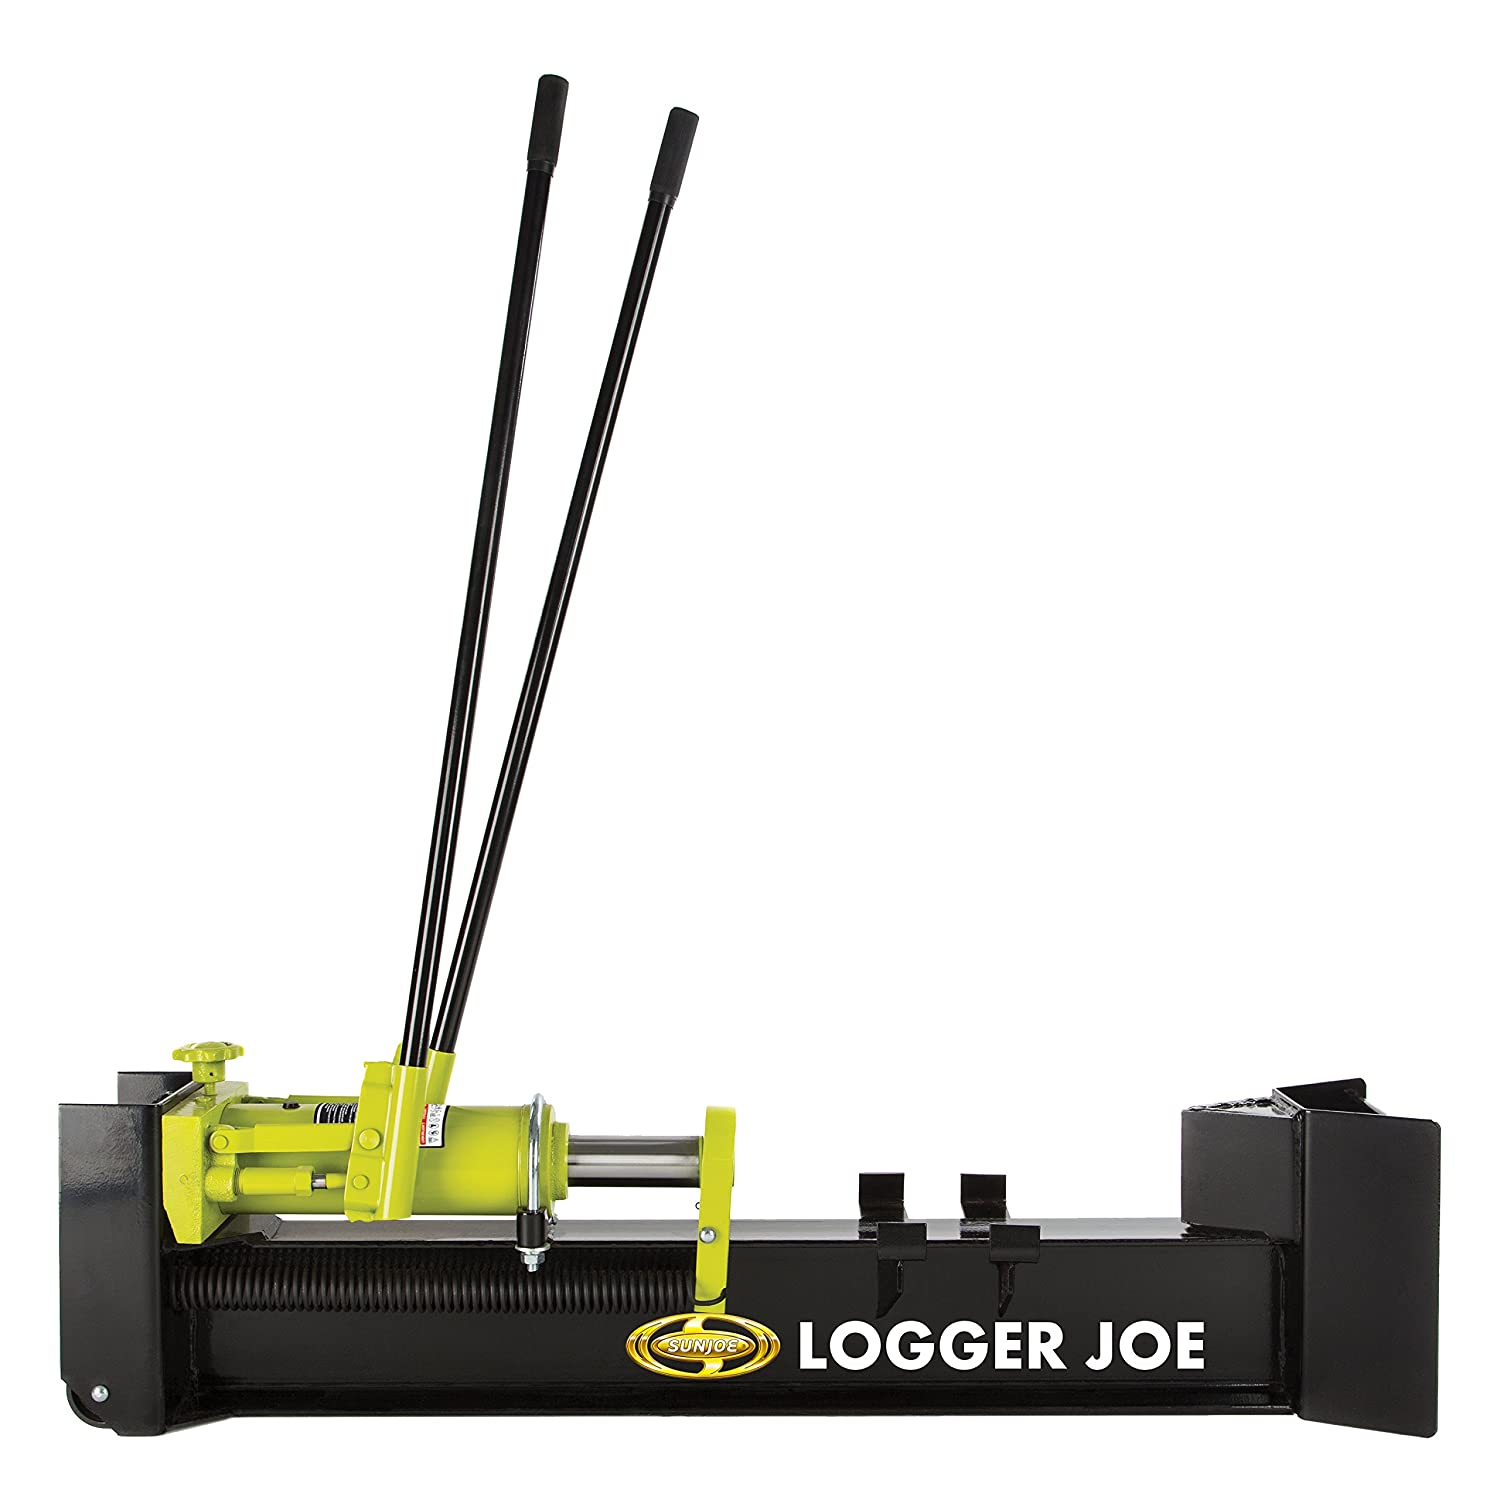 Sun Joe LJ10M Logger Joe 10-Ton Manual Hydraulic Log Splitter